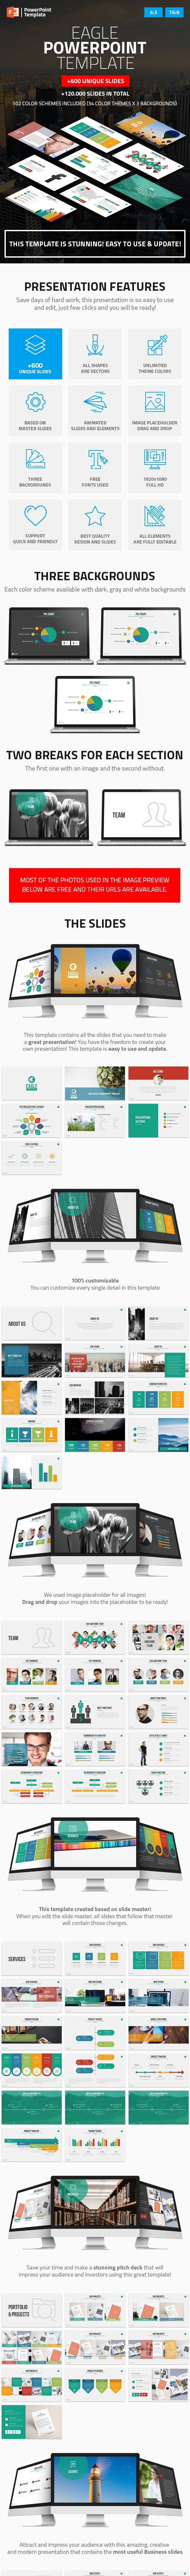 Eagle - Startup Business PowerPoint Presentation Template - Business PowerPoint Templates